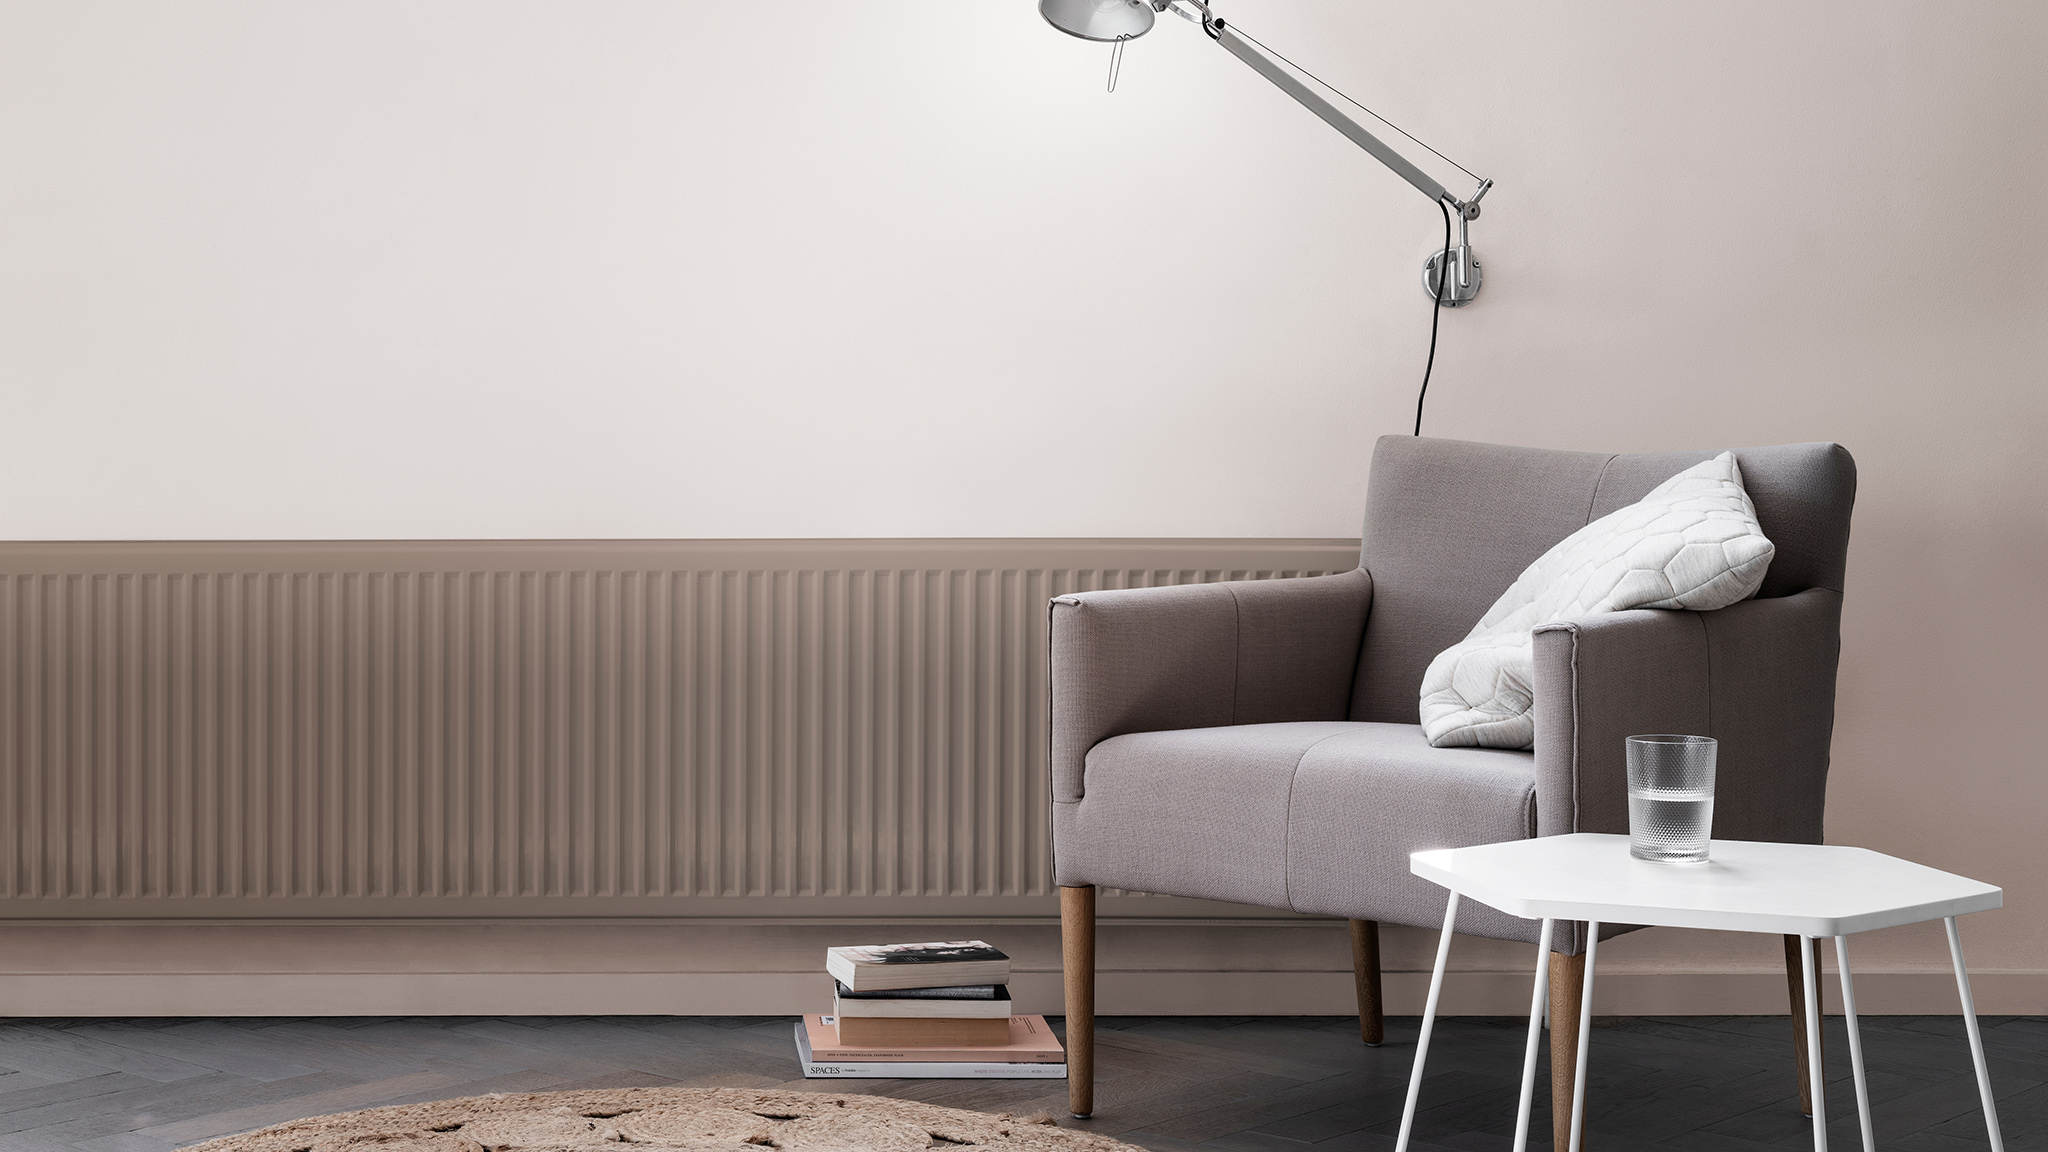 dulux-simply-refresh-radiators-ideas-global-2